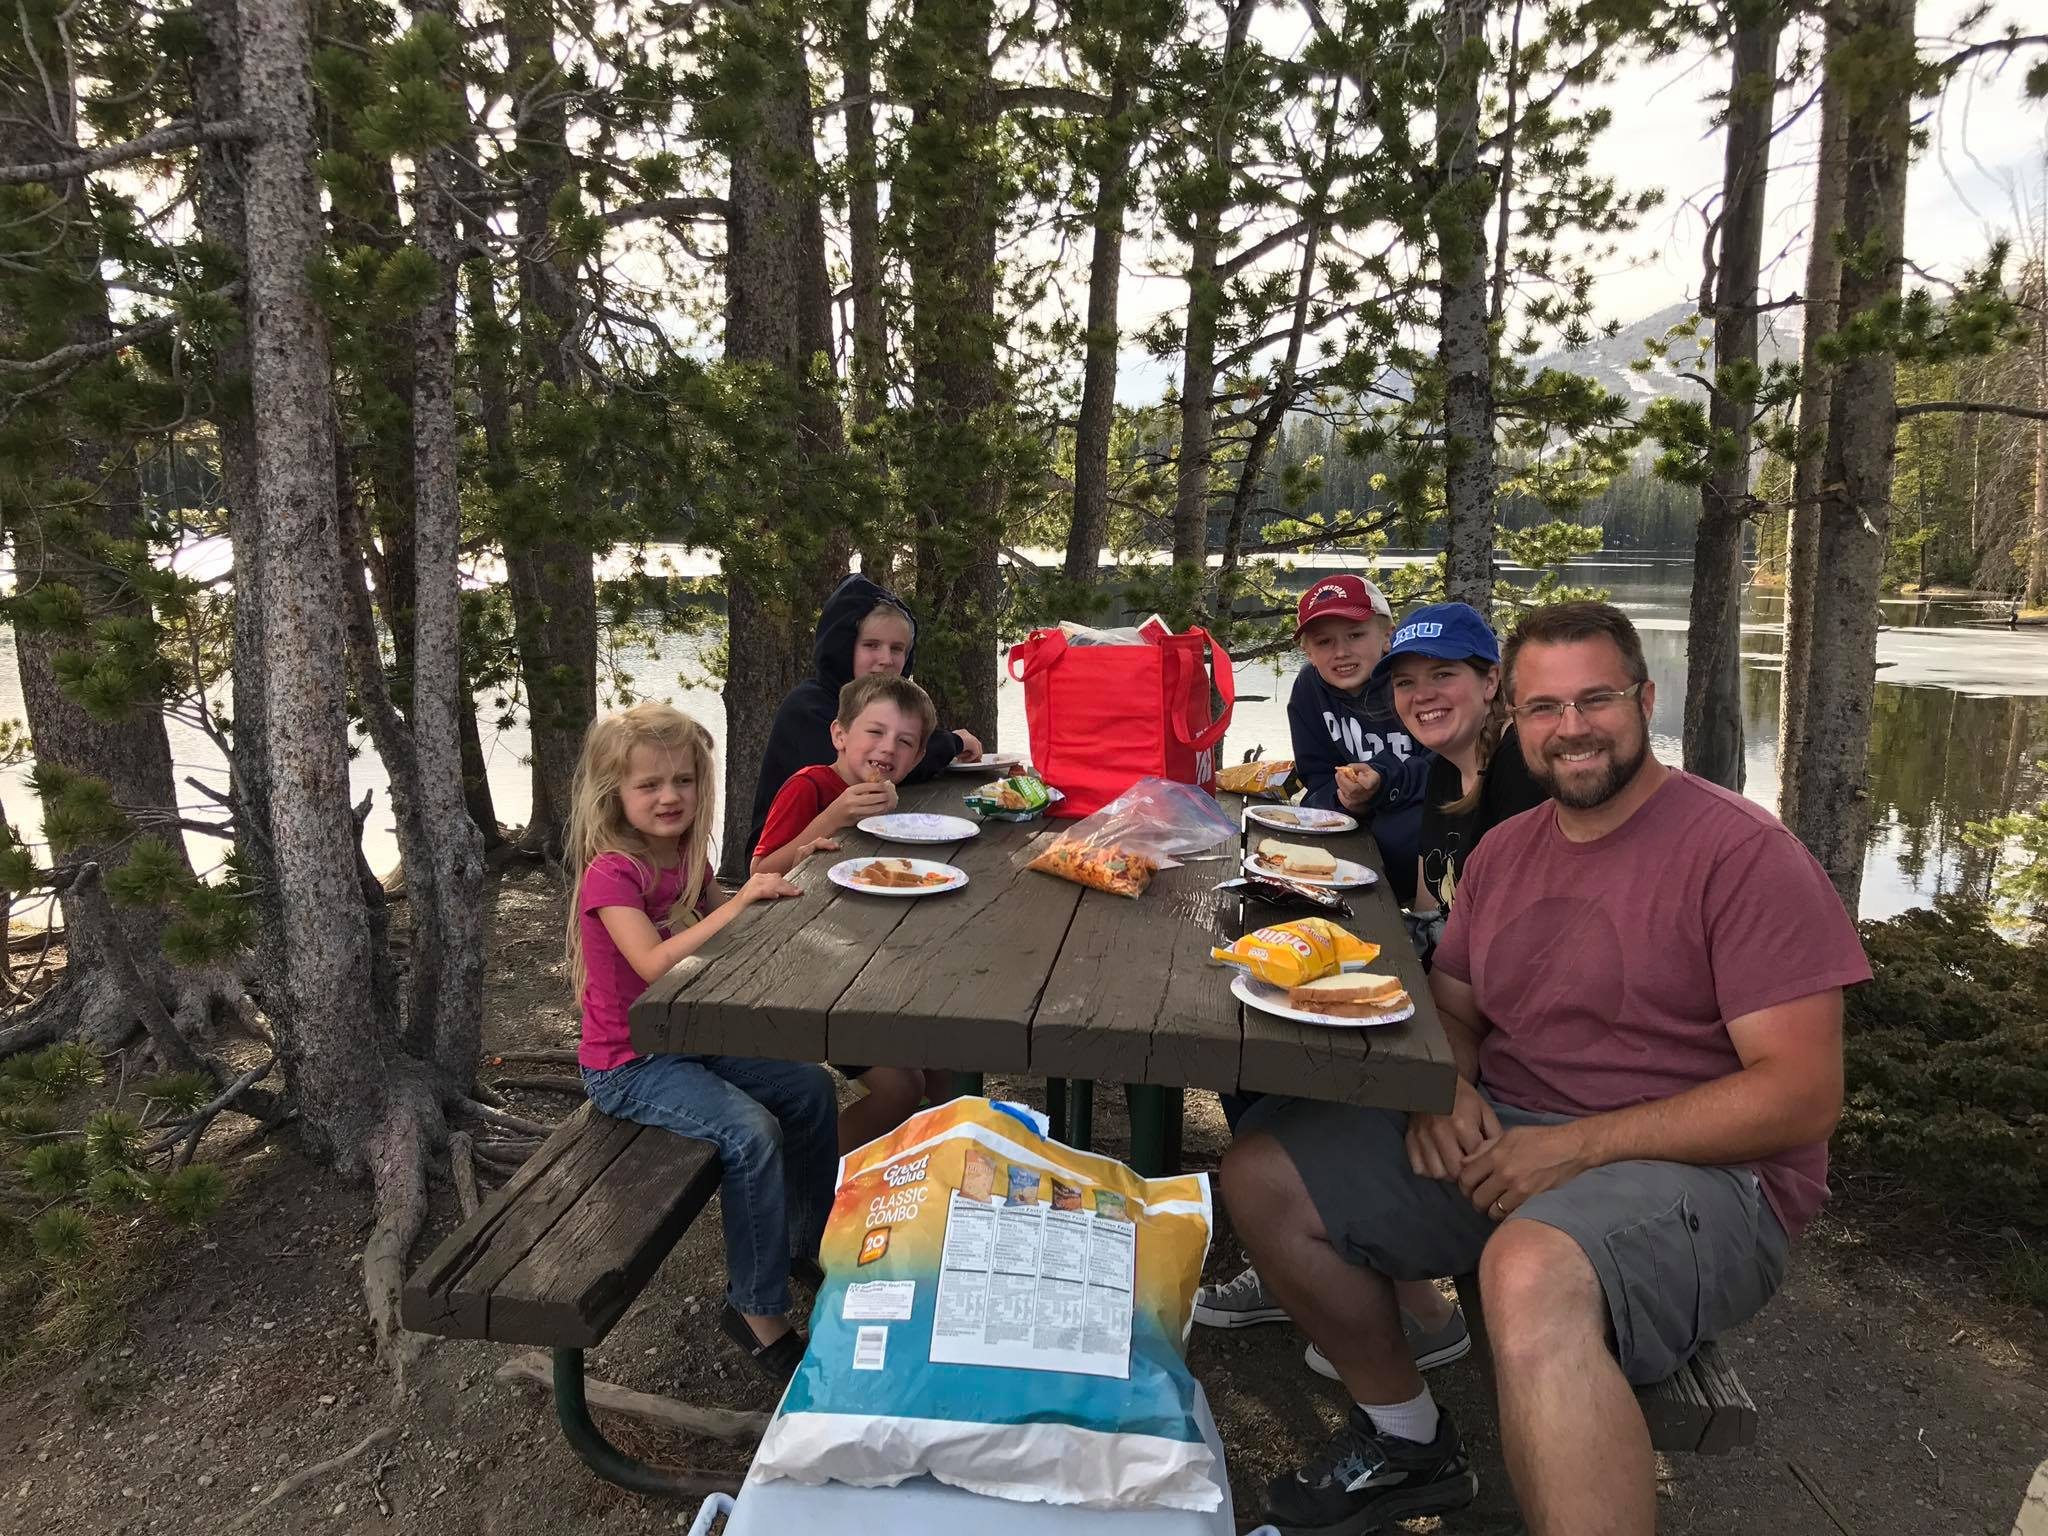 picnic, yellowstone picnic, travel with kids, eat for cheap on trip, travel food tips